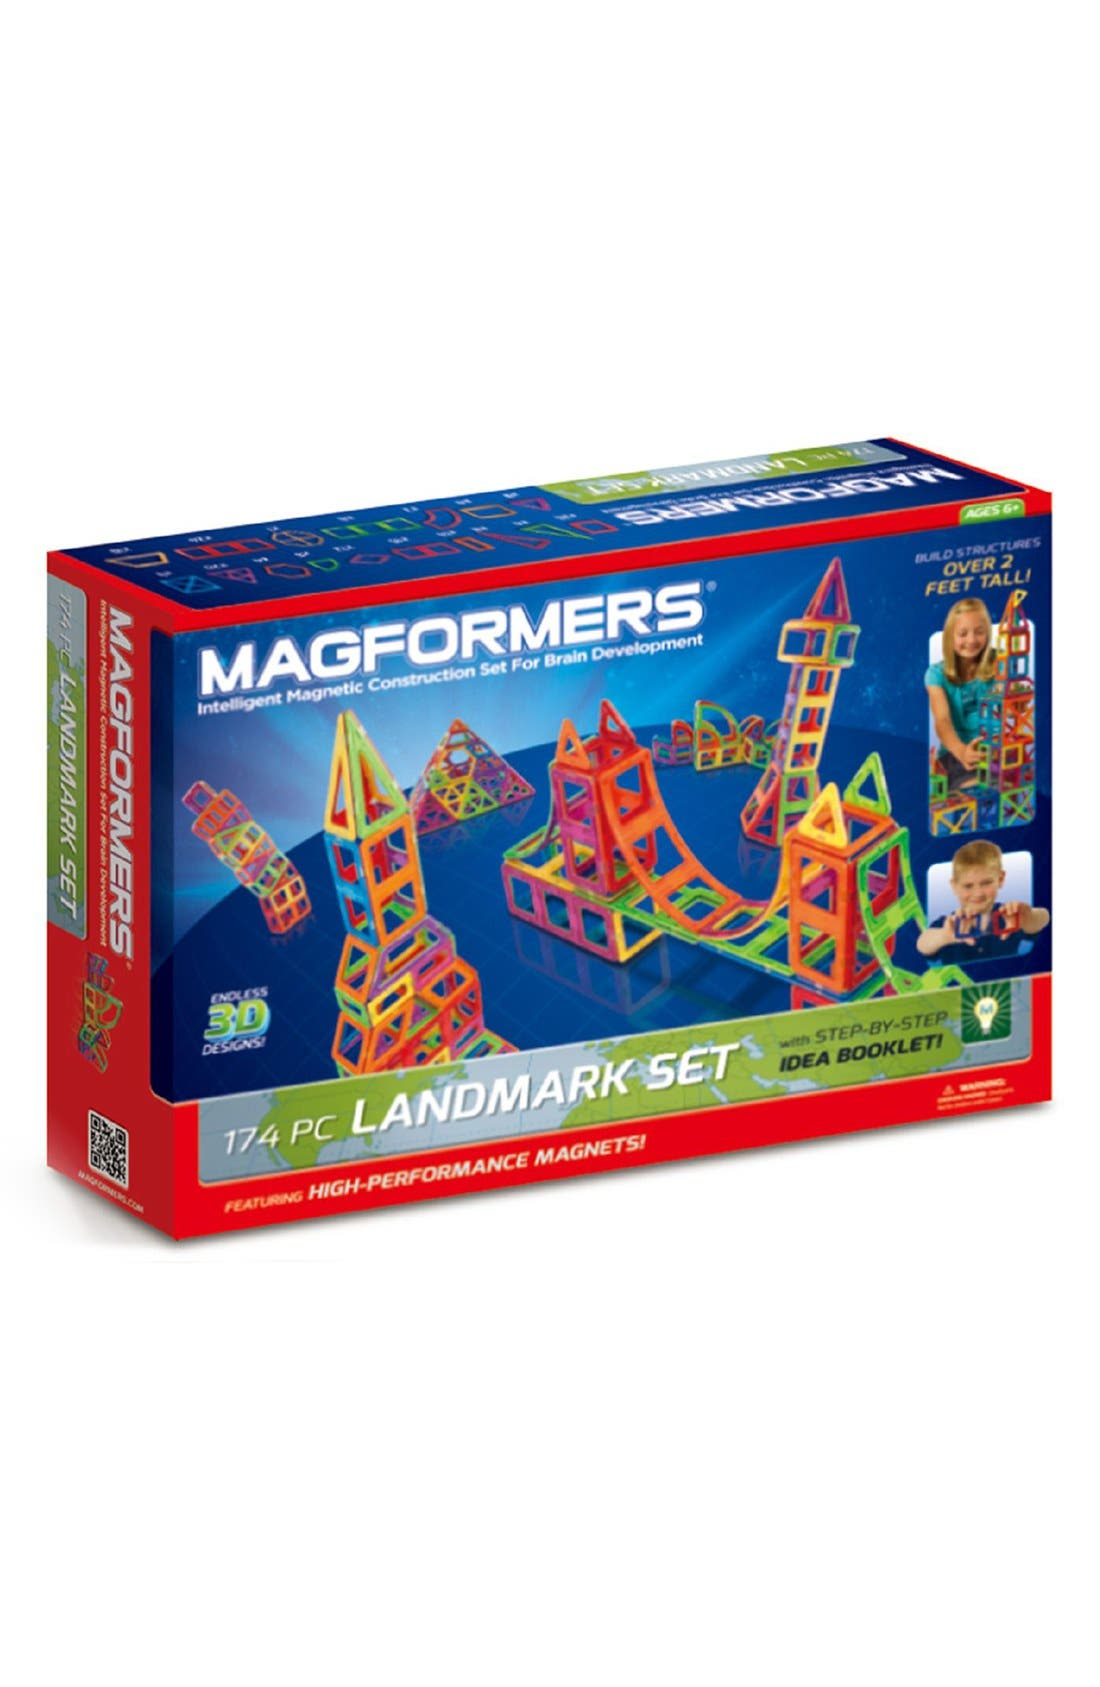 MAGFORMERS 'Landmark' Magnetic 3D Construction Set